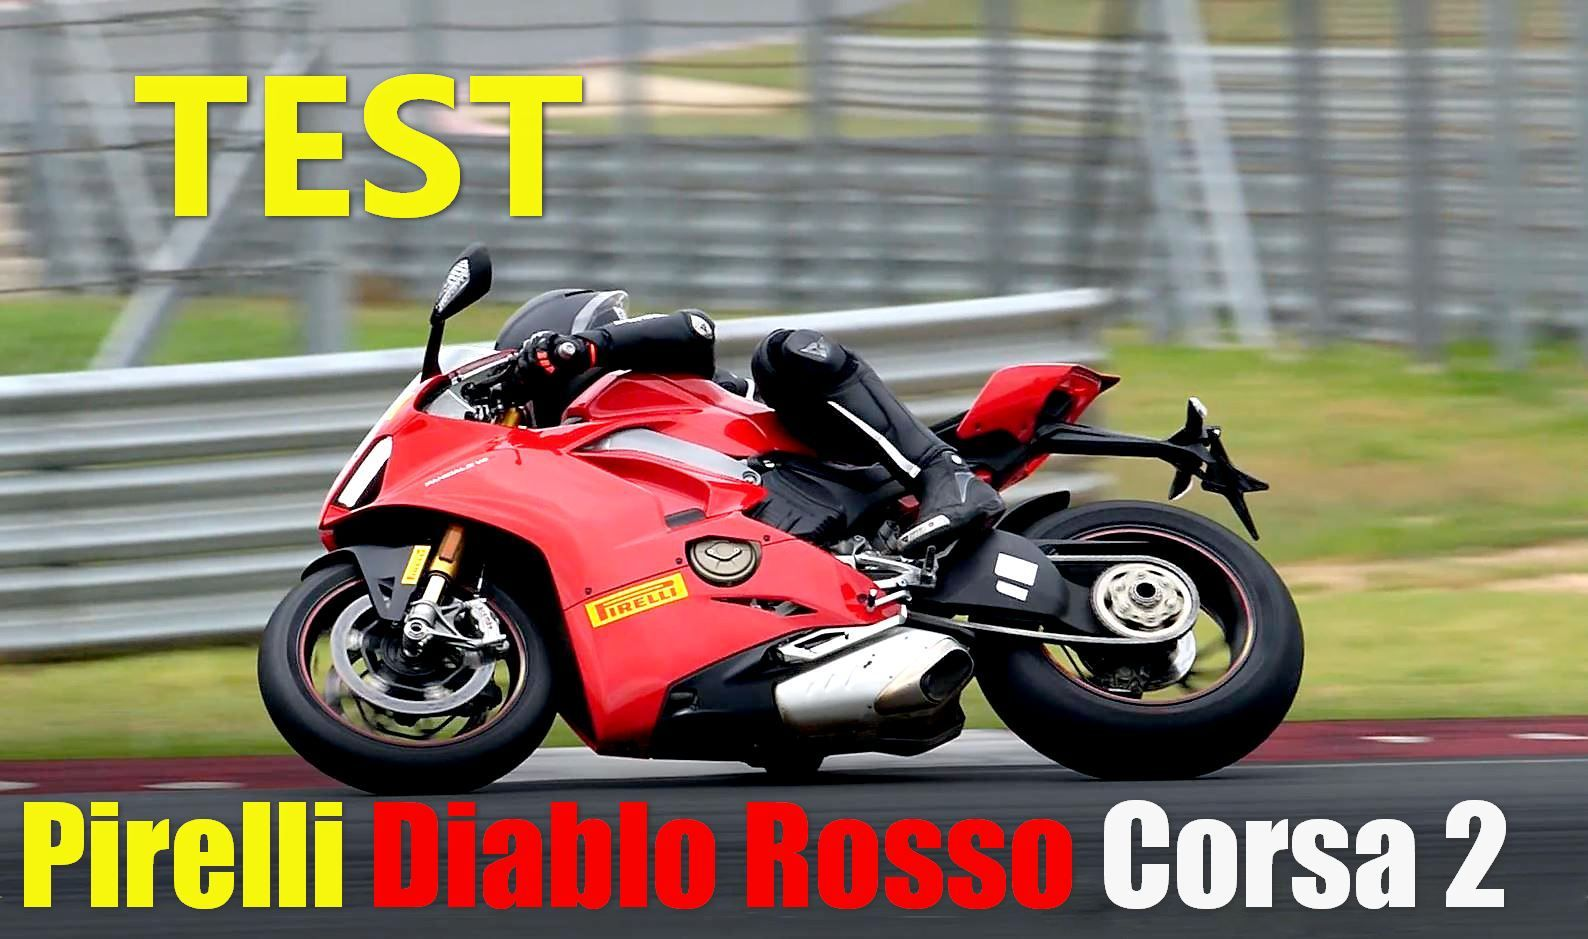 test pirelli diablo rosso corsa 2 test su strada ed in. Black Bedroom Furniture Sets. Home Design Ideas